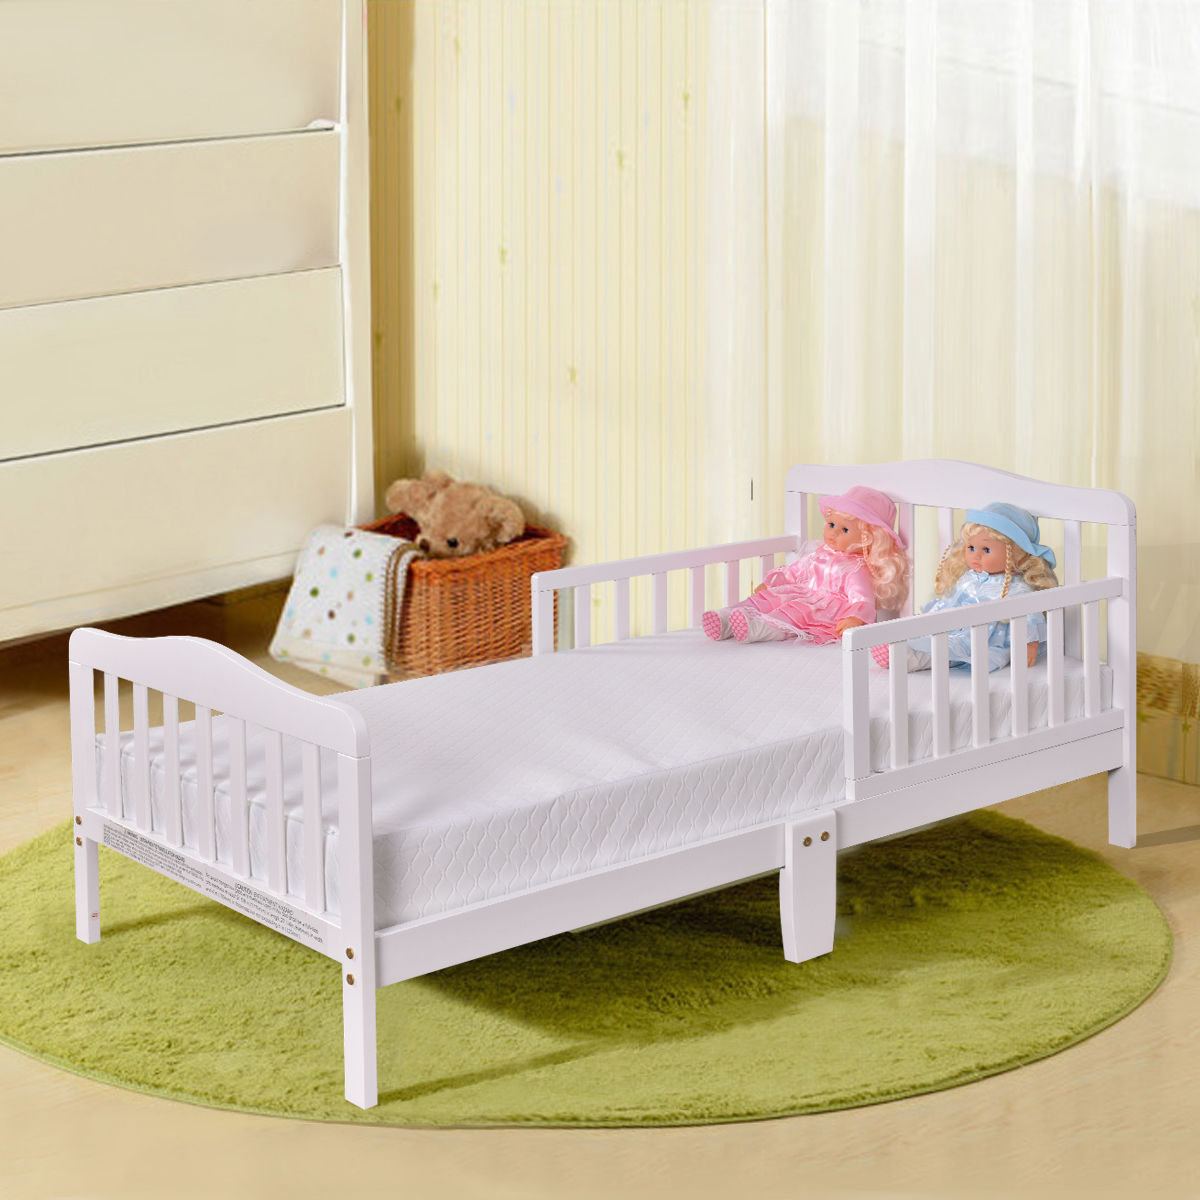 Costway Baby Toddler Bed Kids Chirldren Wood Bedroom Furniture w/ Safety Rails White